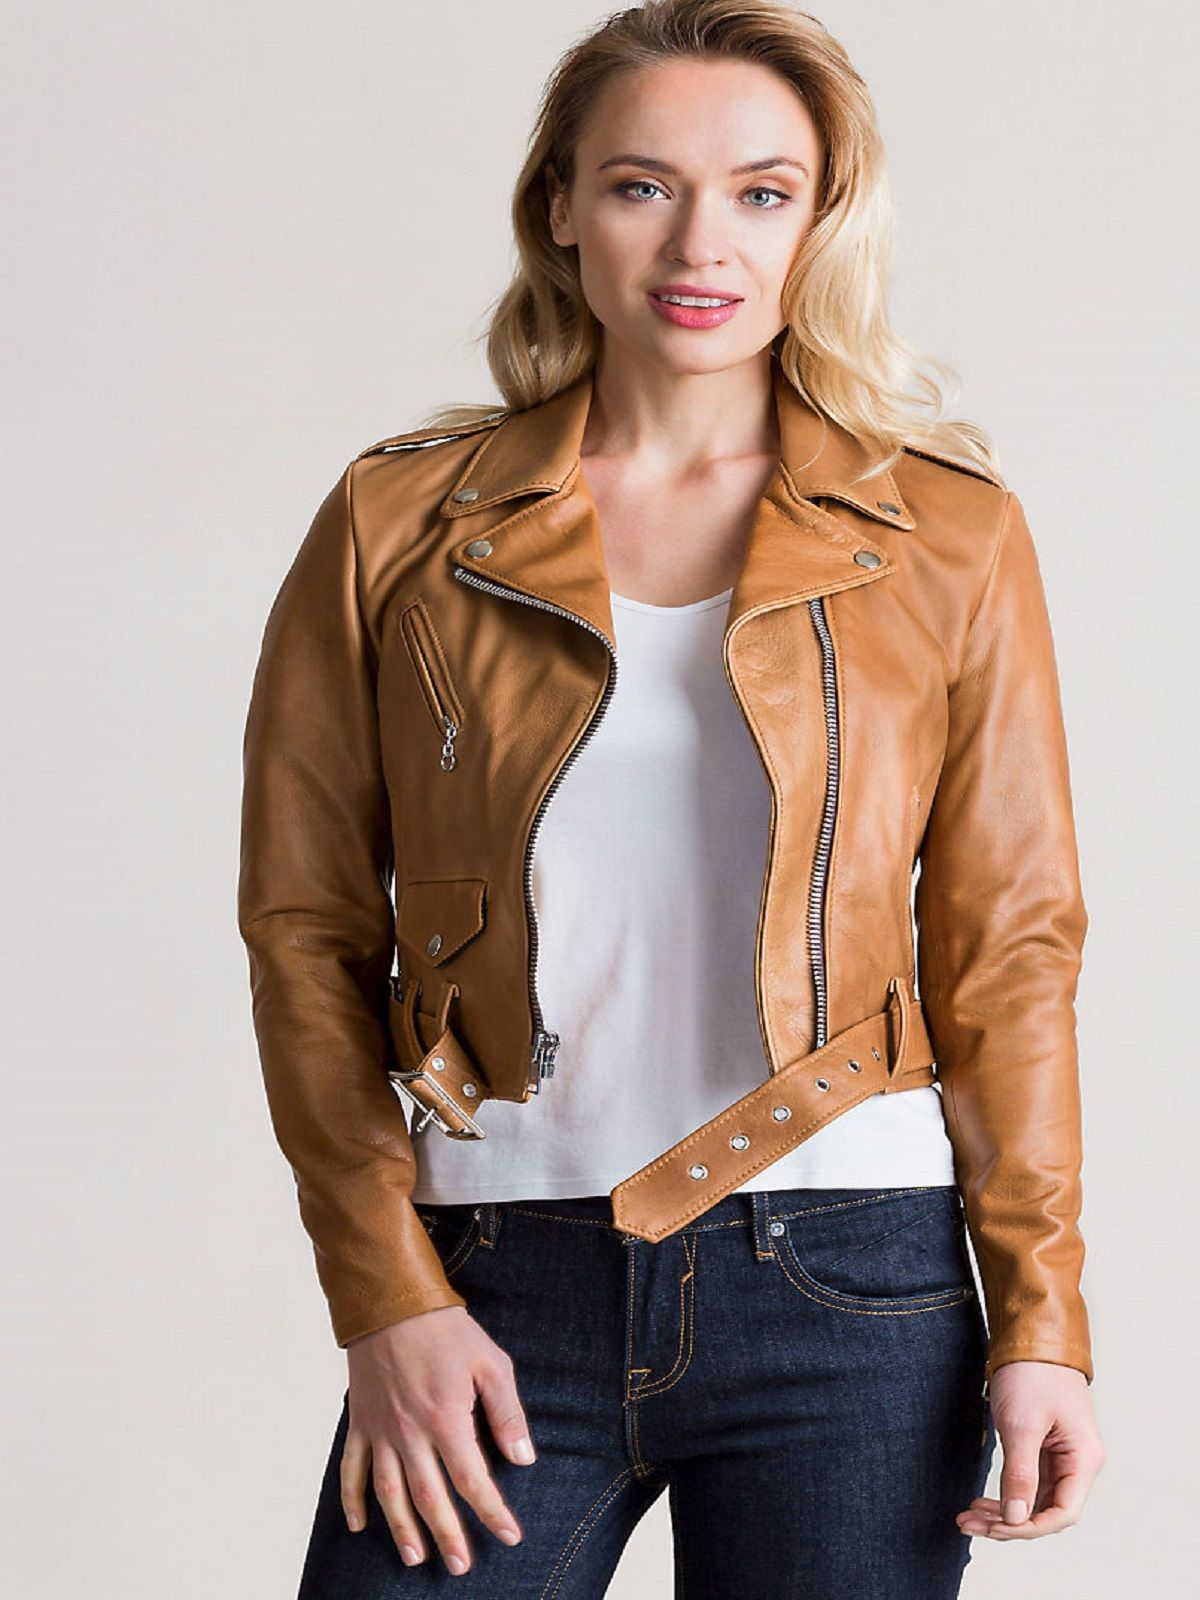 Women's Rust Brown Leather Jacket Leather jacket